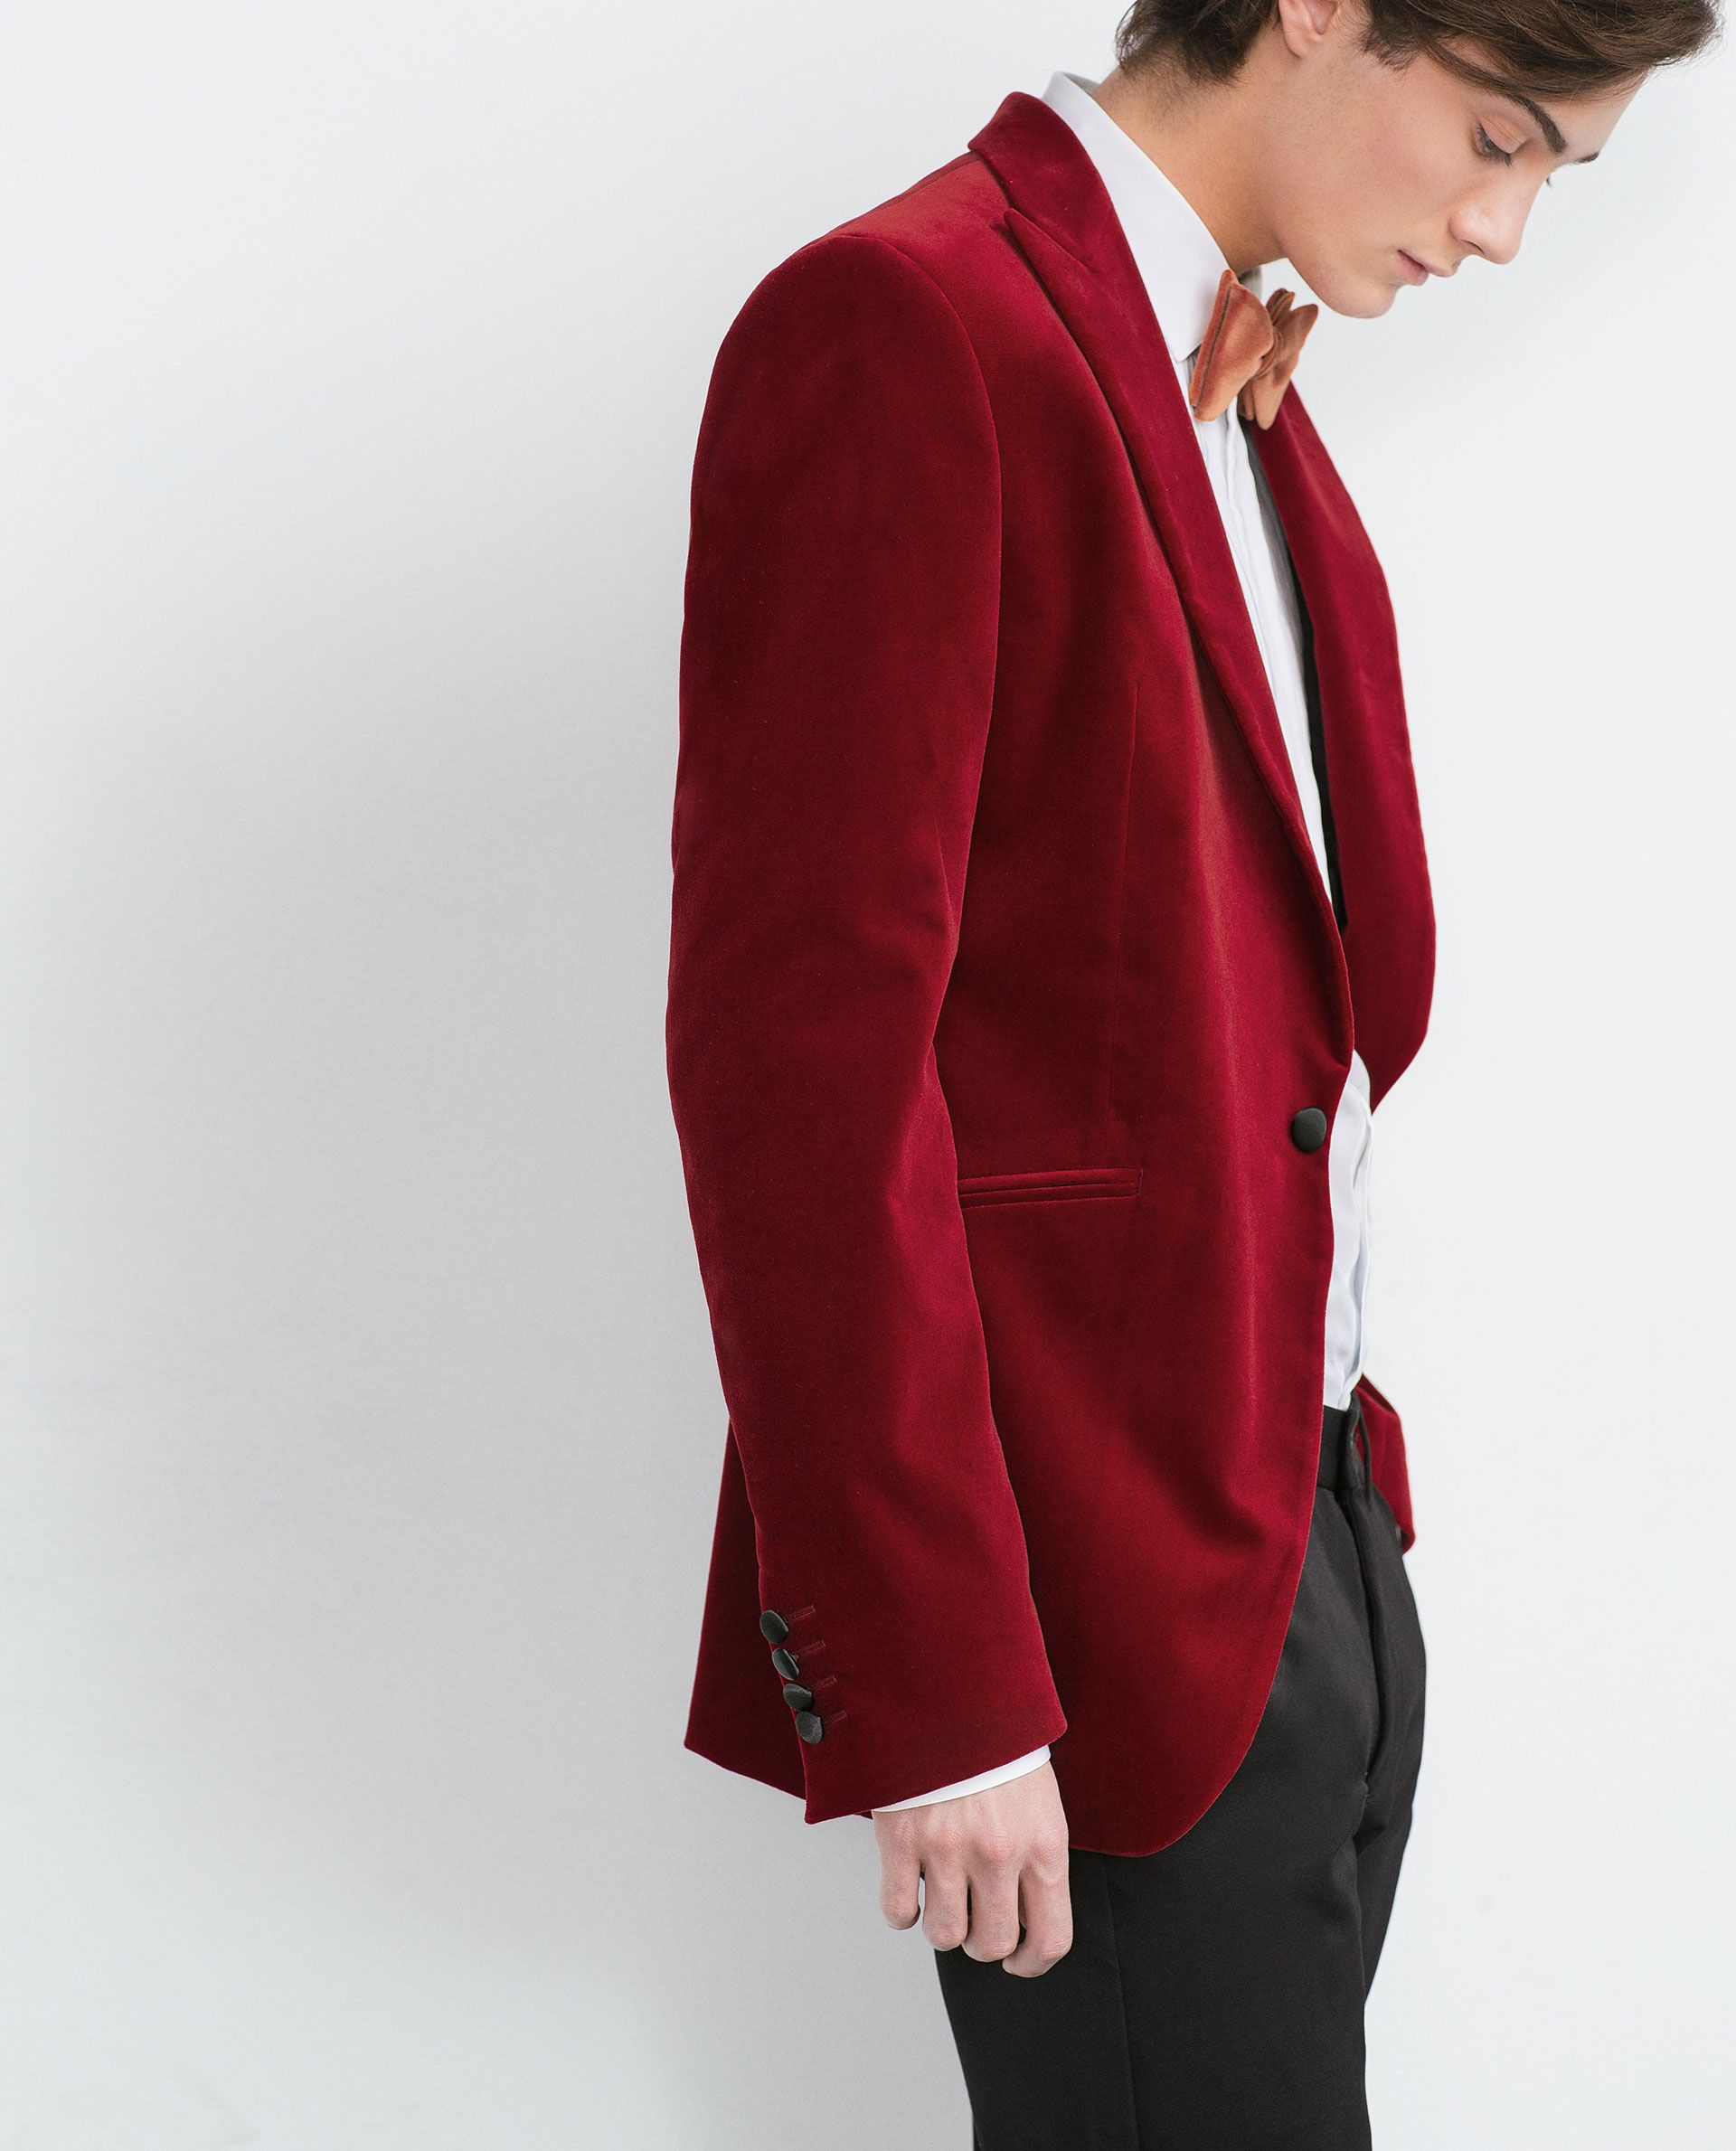 ZARA Man Winter 2015 (With images) Fashion, Red